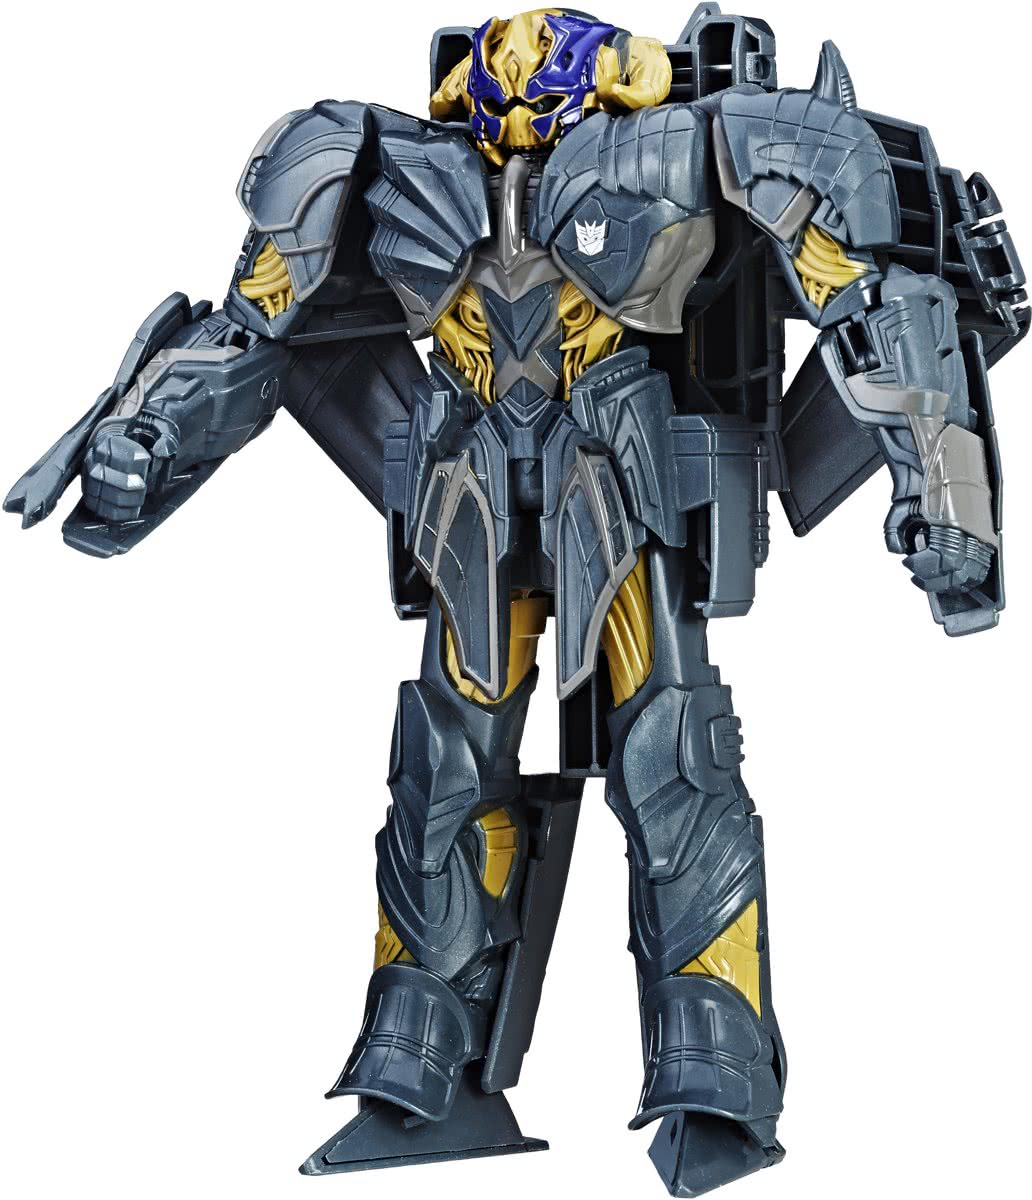 Transformers: The Last Knight - Knight Armor Turbo Changer Megatron transformerspeelgoed